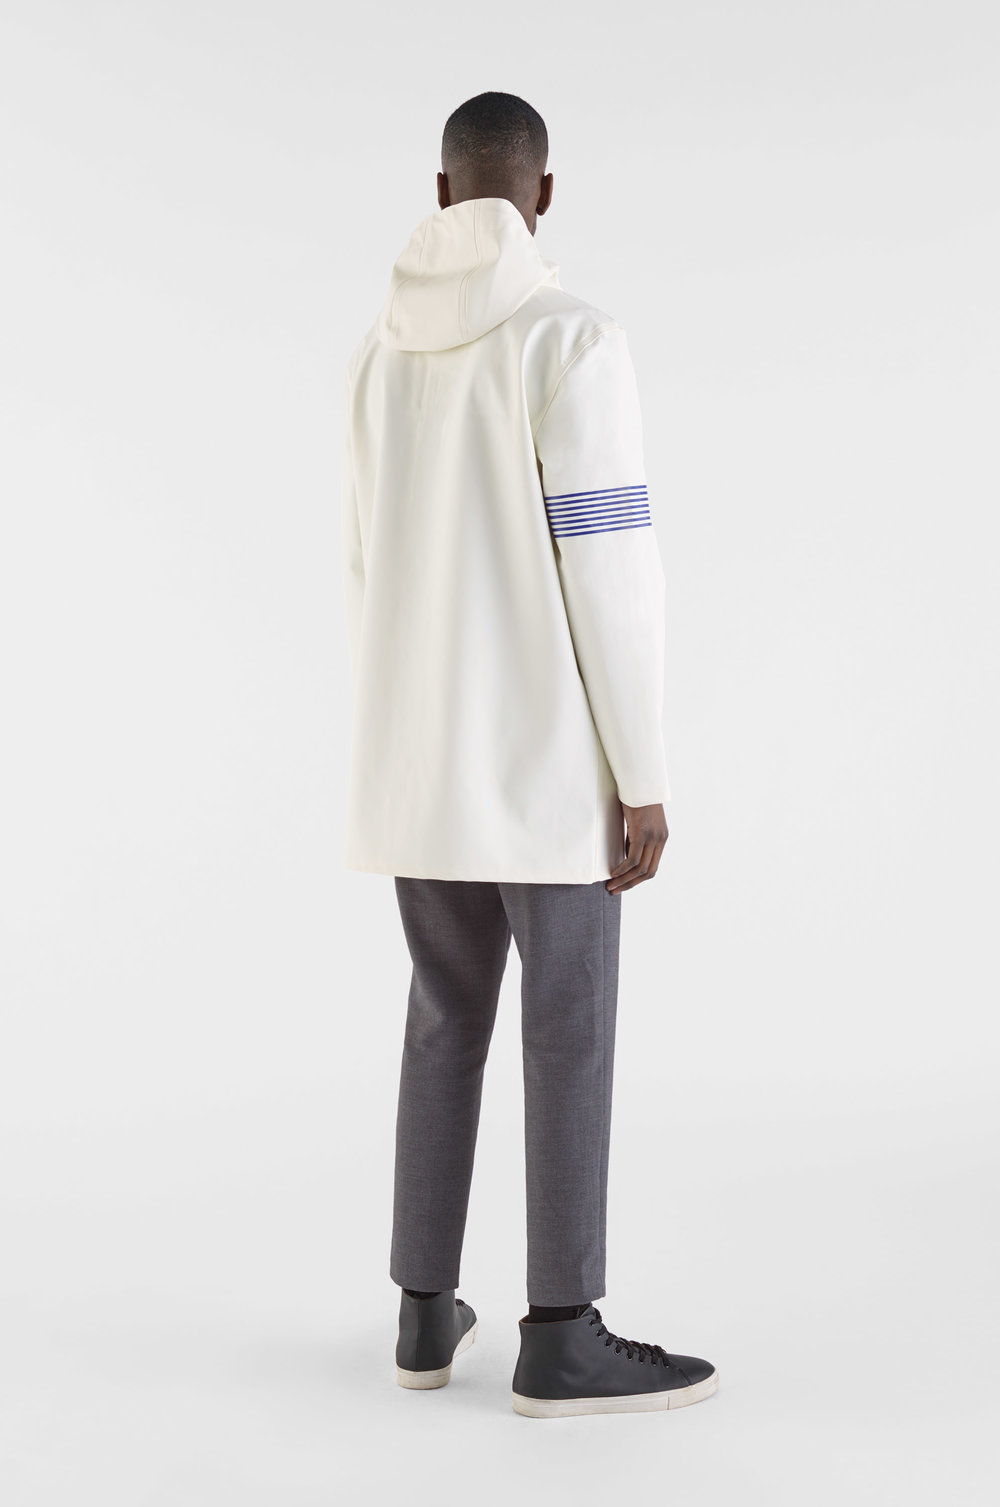 Stutterheim_BOO_Man_Coat_Band_Of_Outsiders_White_Model_Man_2.jpg